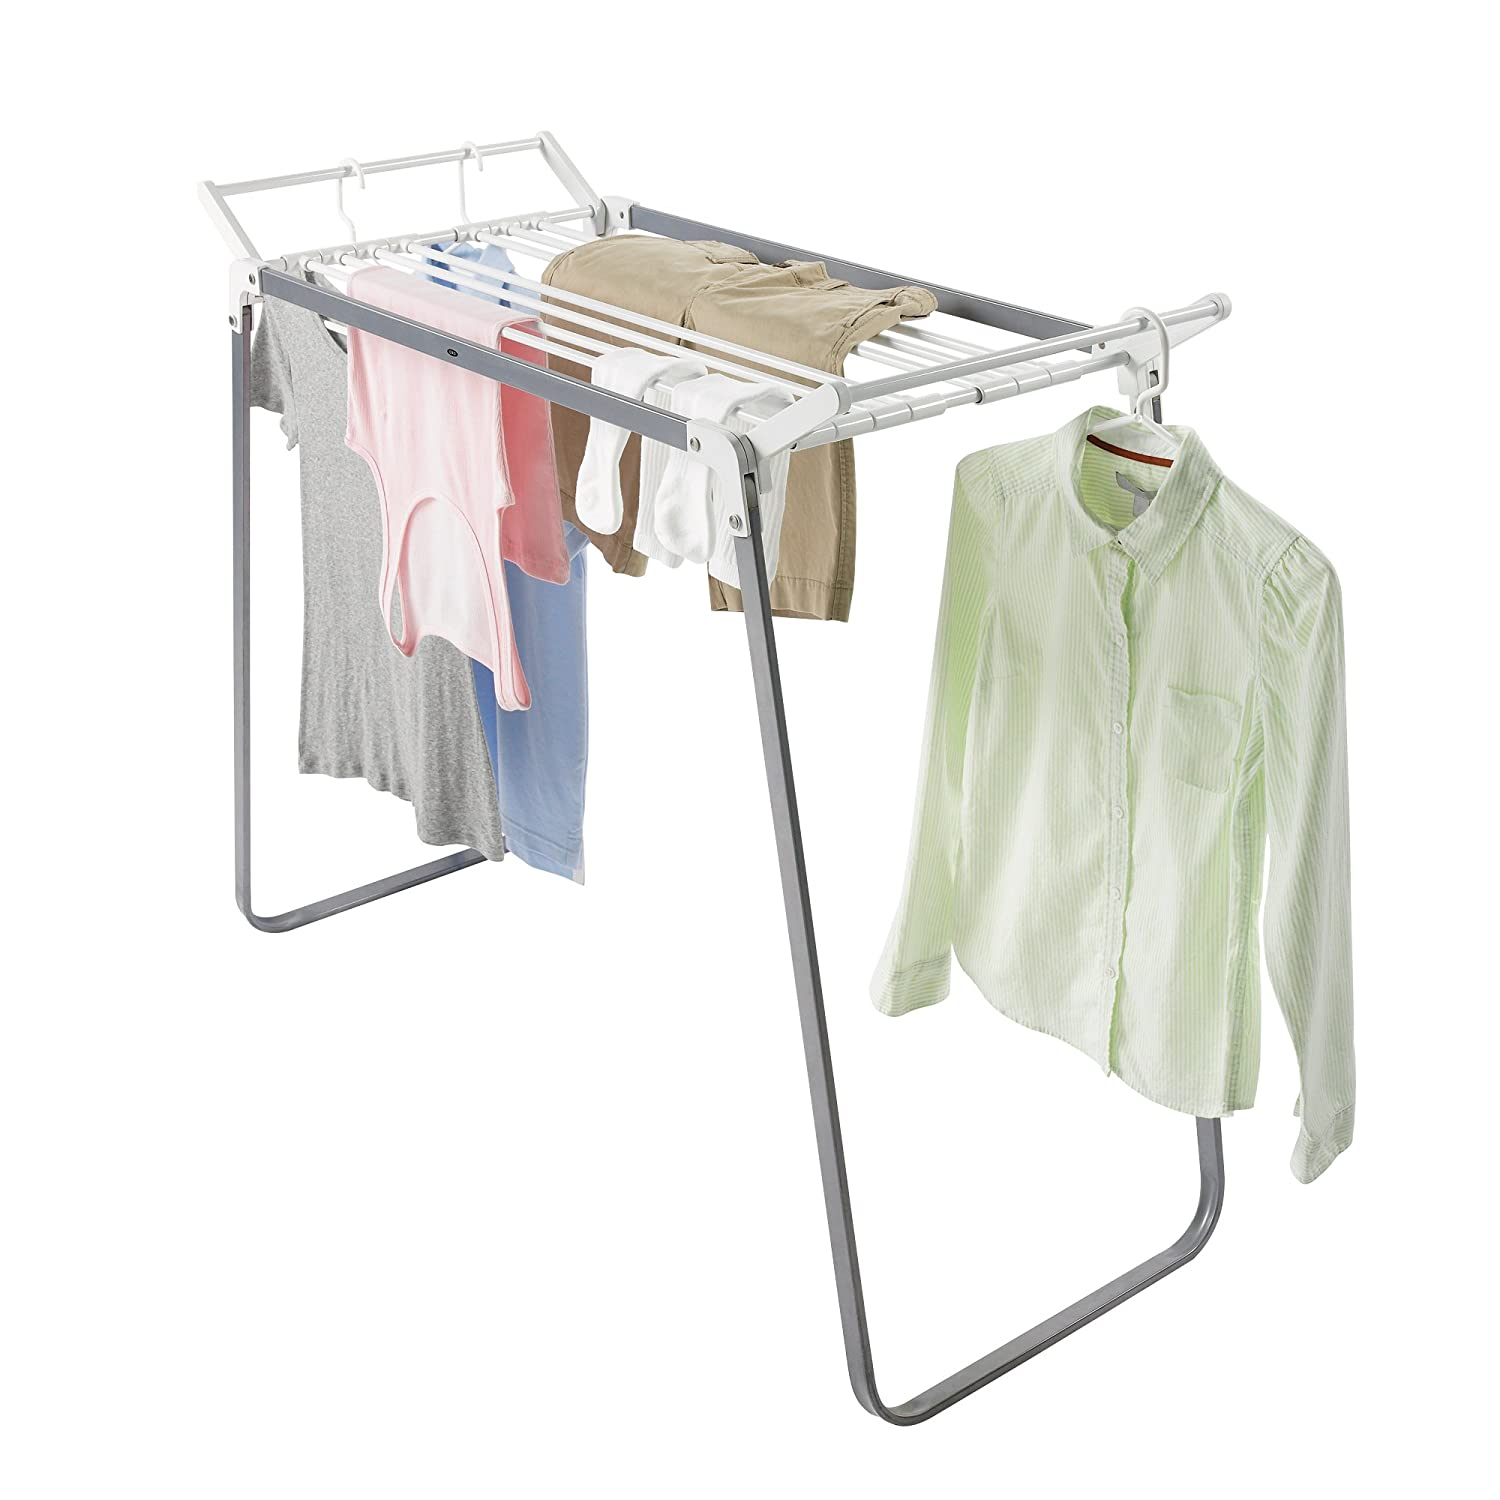 Small Clothes Dryer Clothes Drying Rack For Small Spaces Webnuggetz